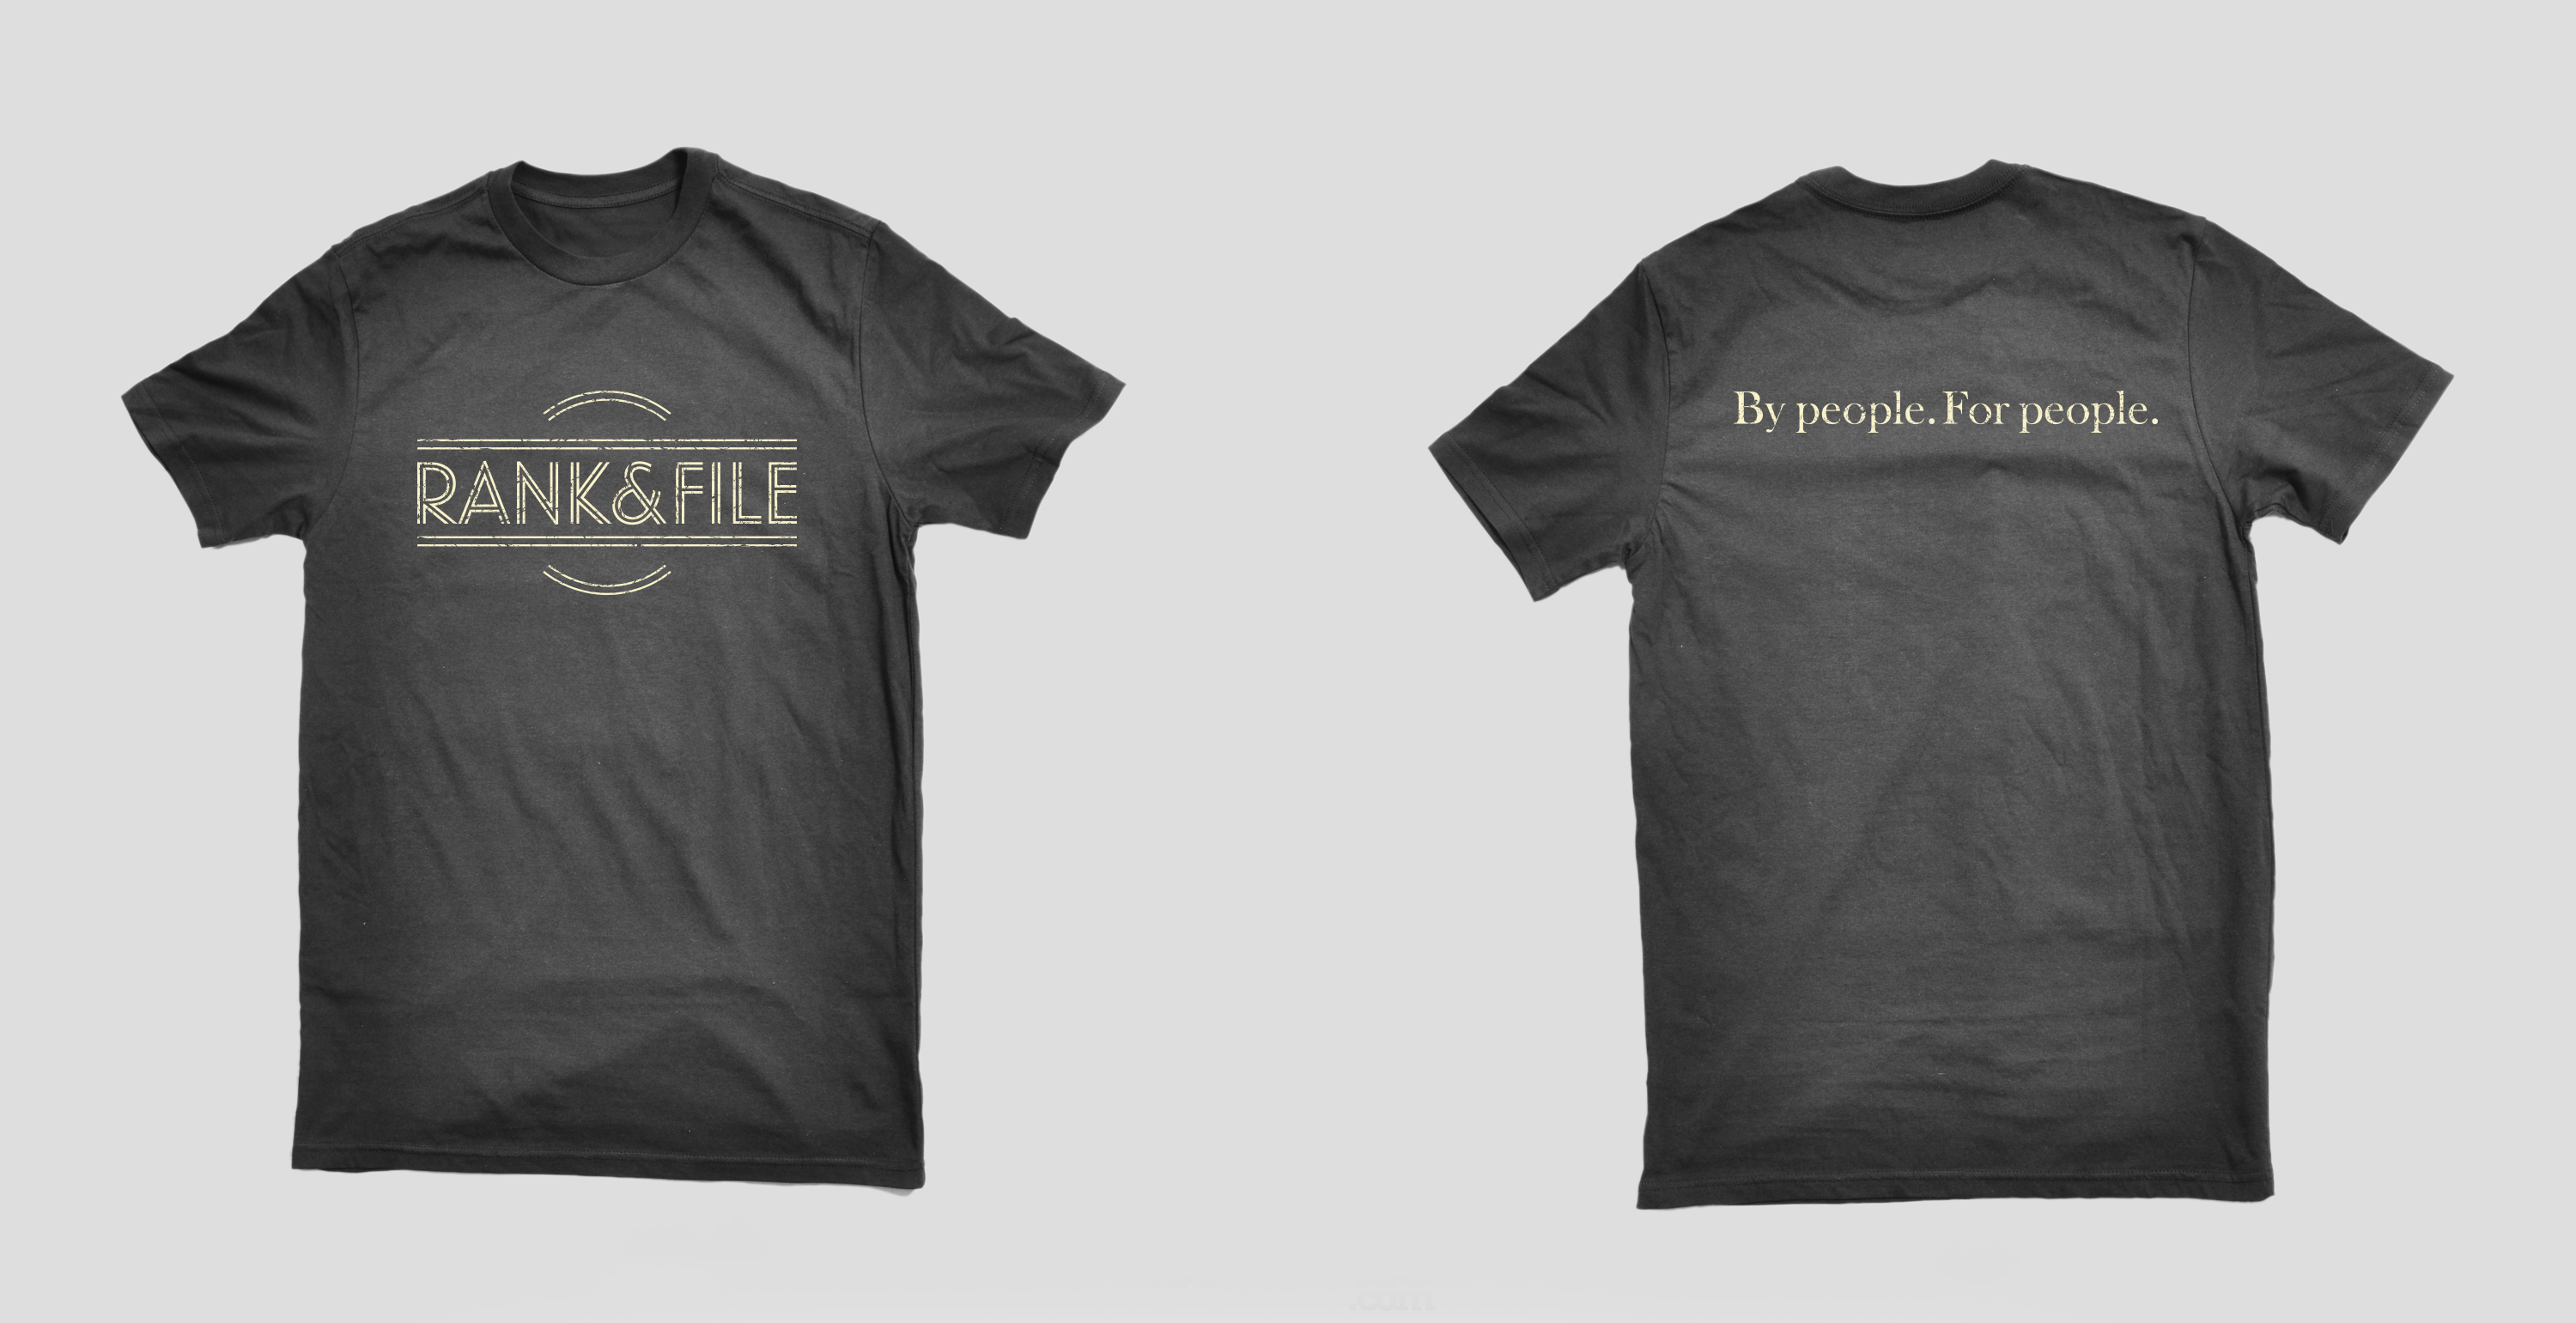 Rank & File t-shirt design for crowdfunding campaign